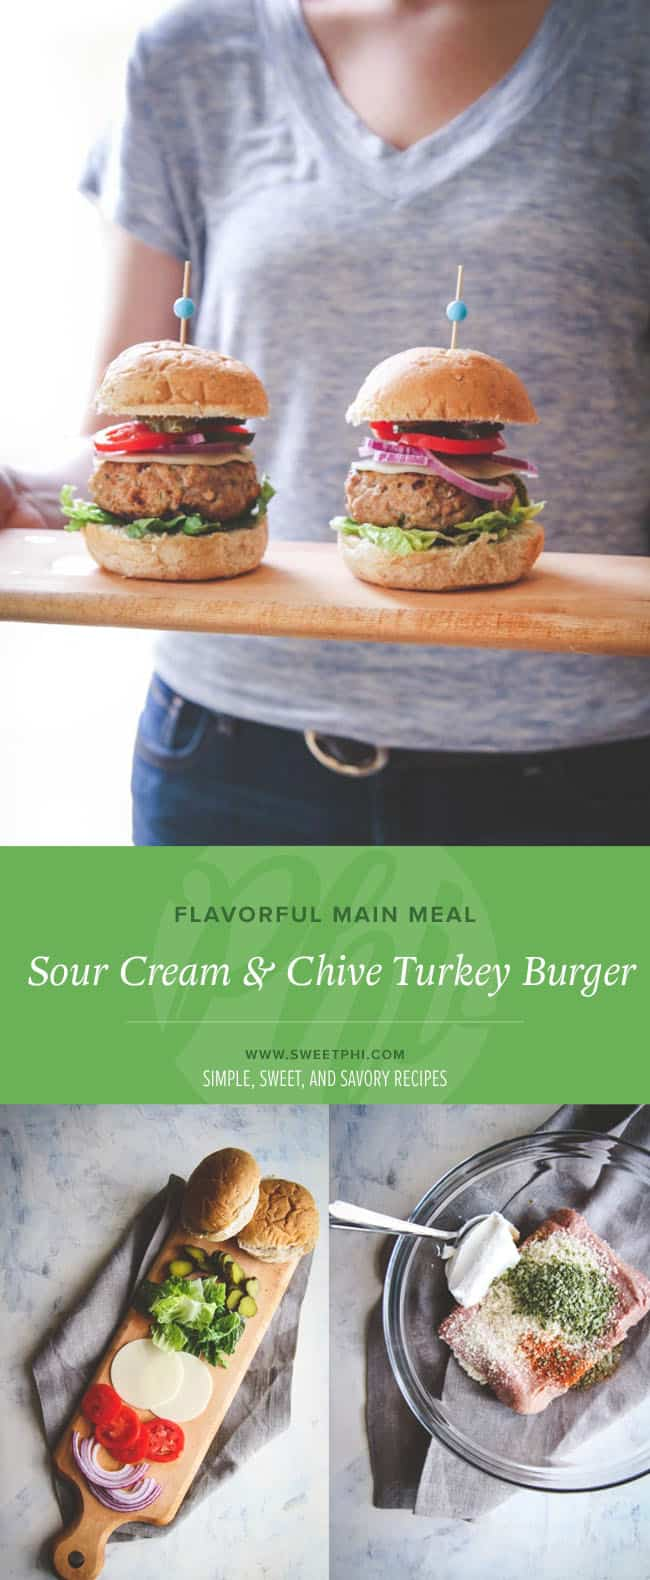 This turkey burger recipe is a great go-to way to enjoy a flavorful, healthy dish anytime!